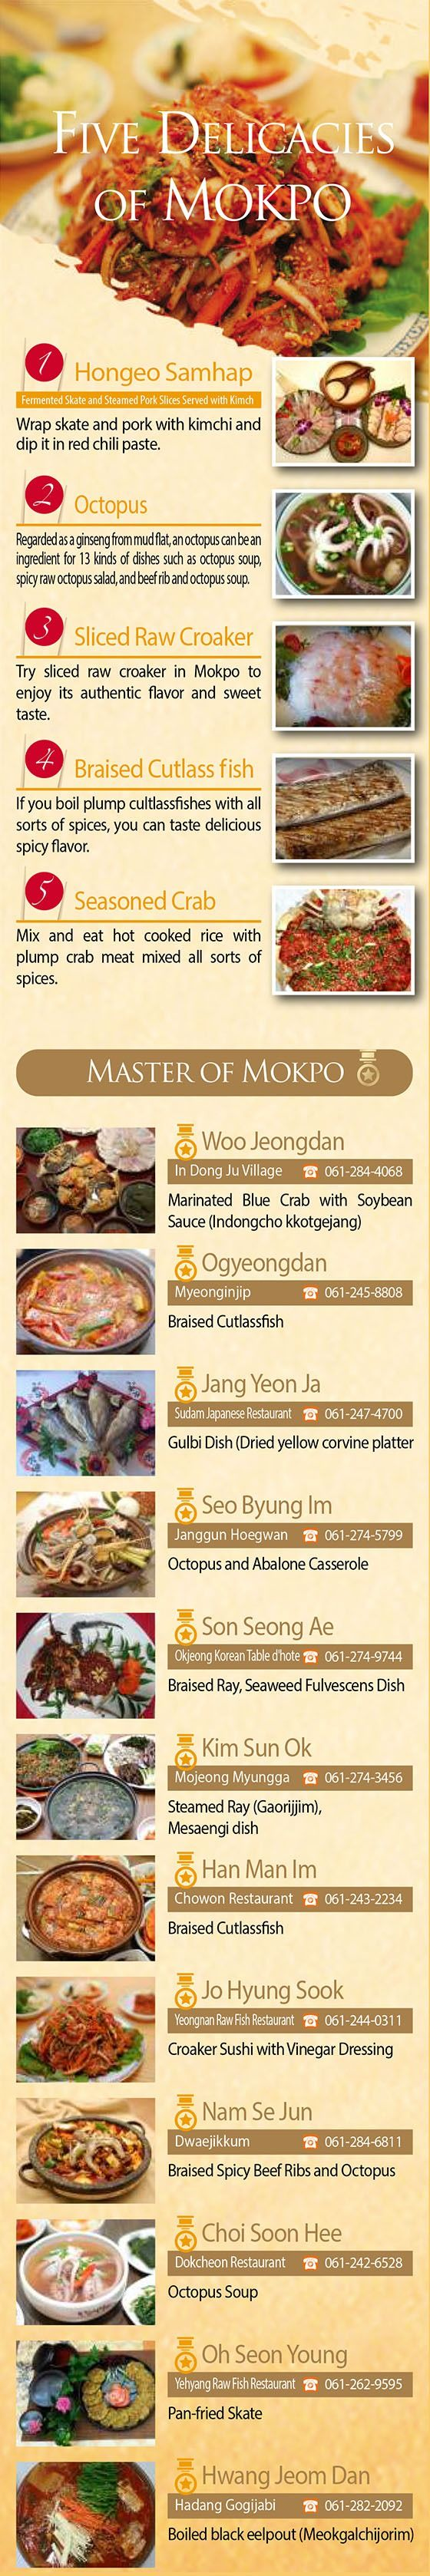 Five delicacies of Mokpo